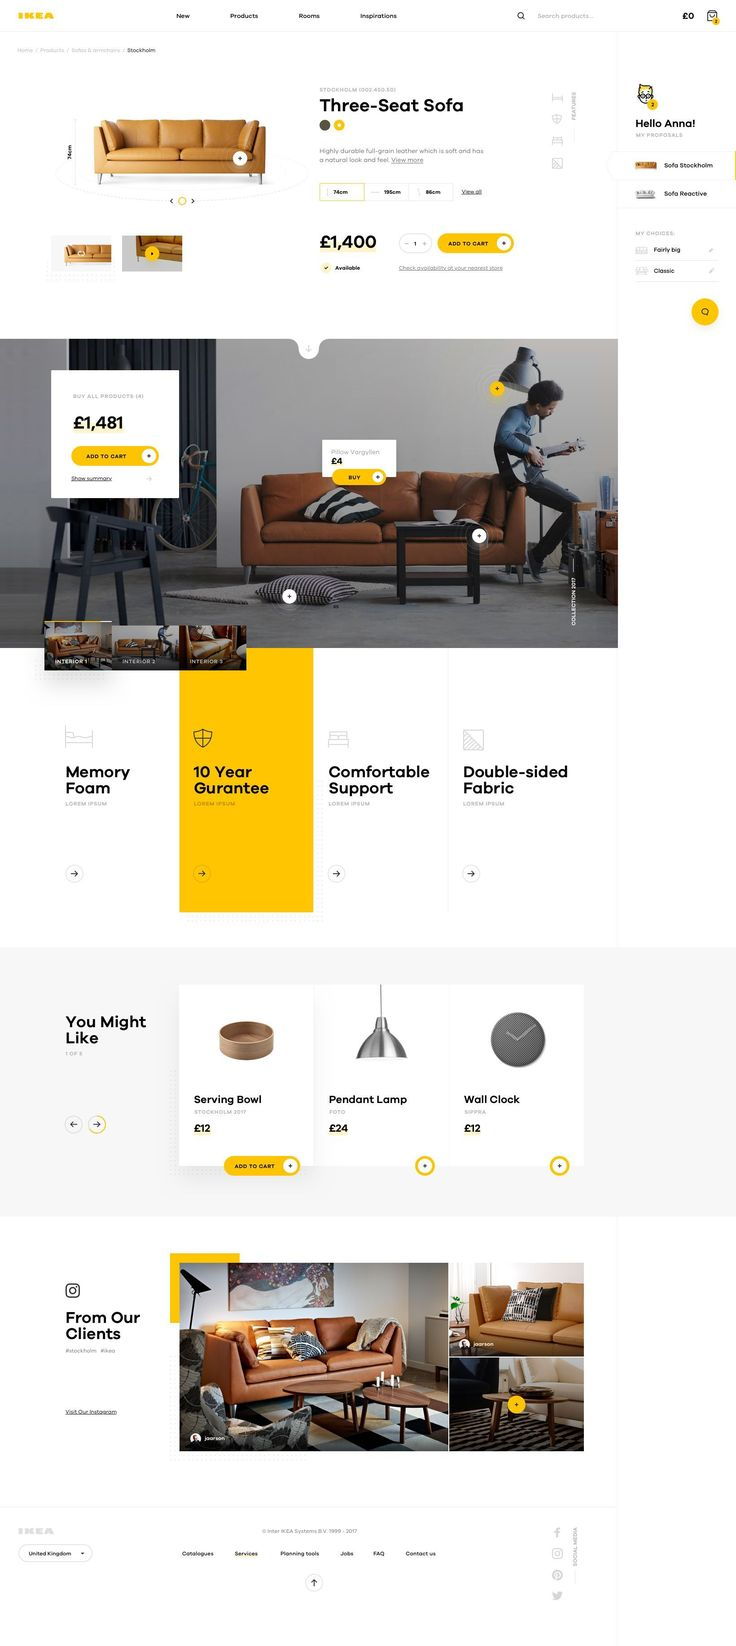 https://dribbble.com/shots/3498642-IKEA-online-experience-redesigned-concept/attachments/773155 #ResponsiveWebDesign